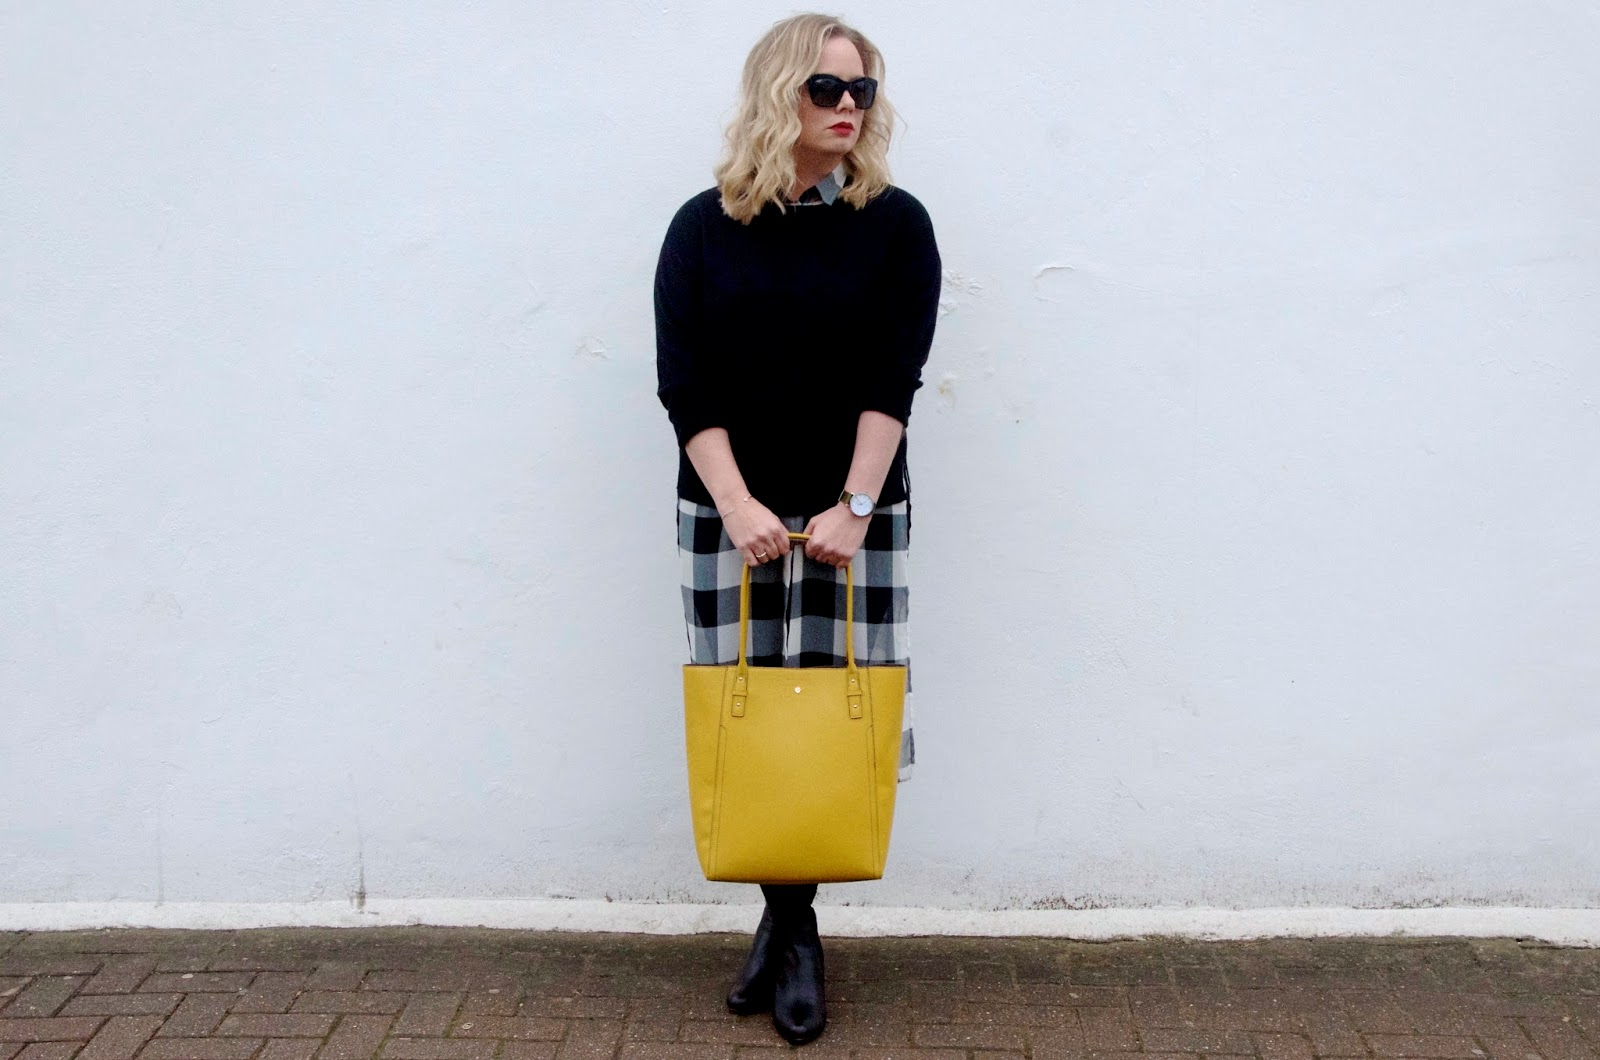 gingham dress, yellow bag, black sunglasses and red lipstick